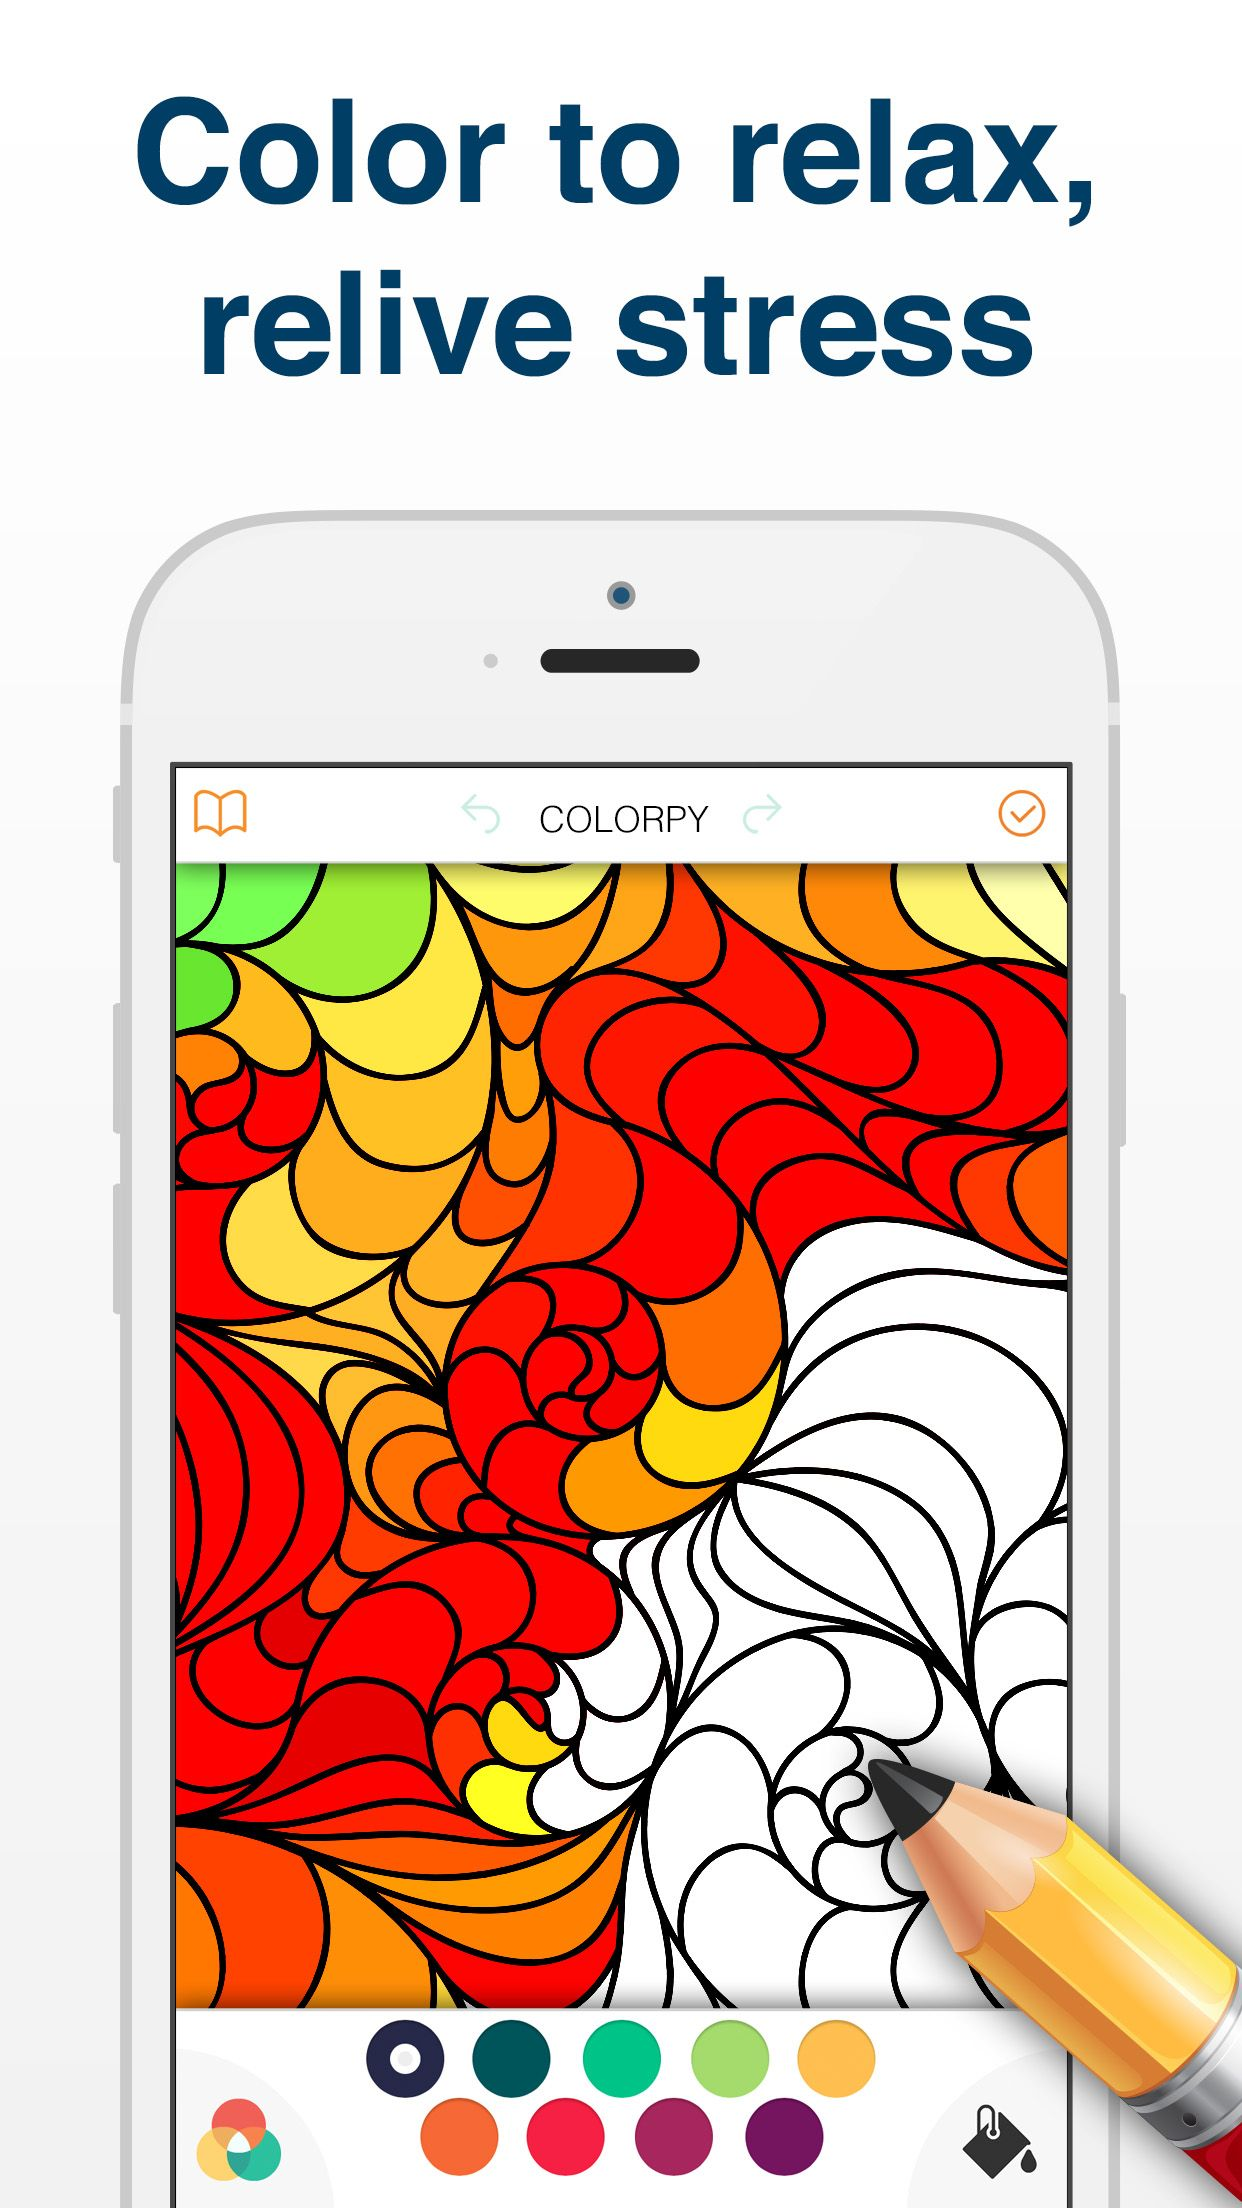 Install App For Ios Or Android Now For Free Color Therapy Coloring Book For Adults And Kids Free Stuff By Mail Arts And Crafts For Kids Free Beauty Samples